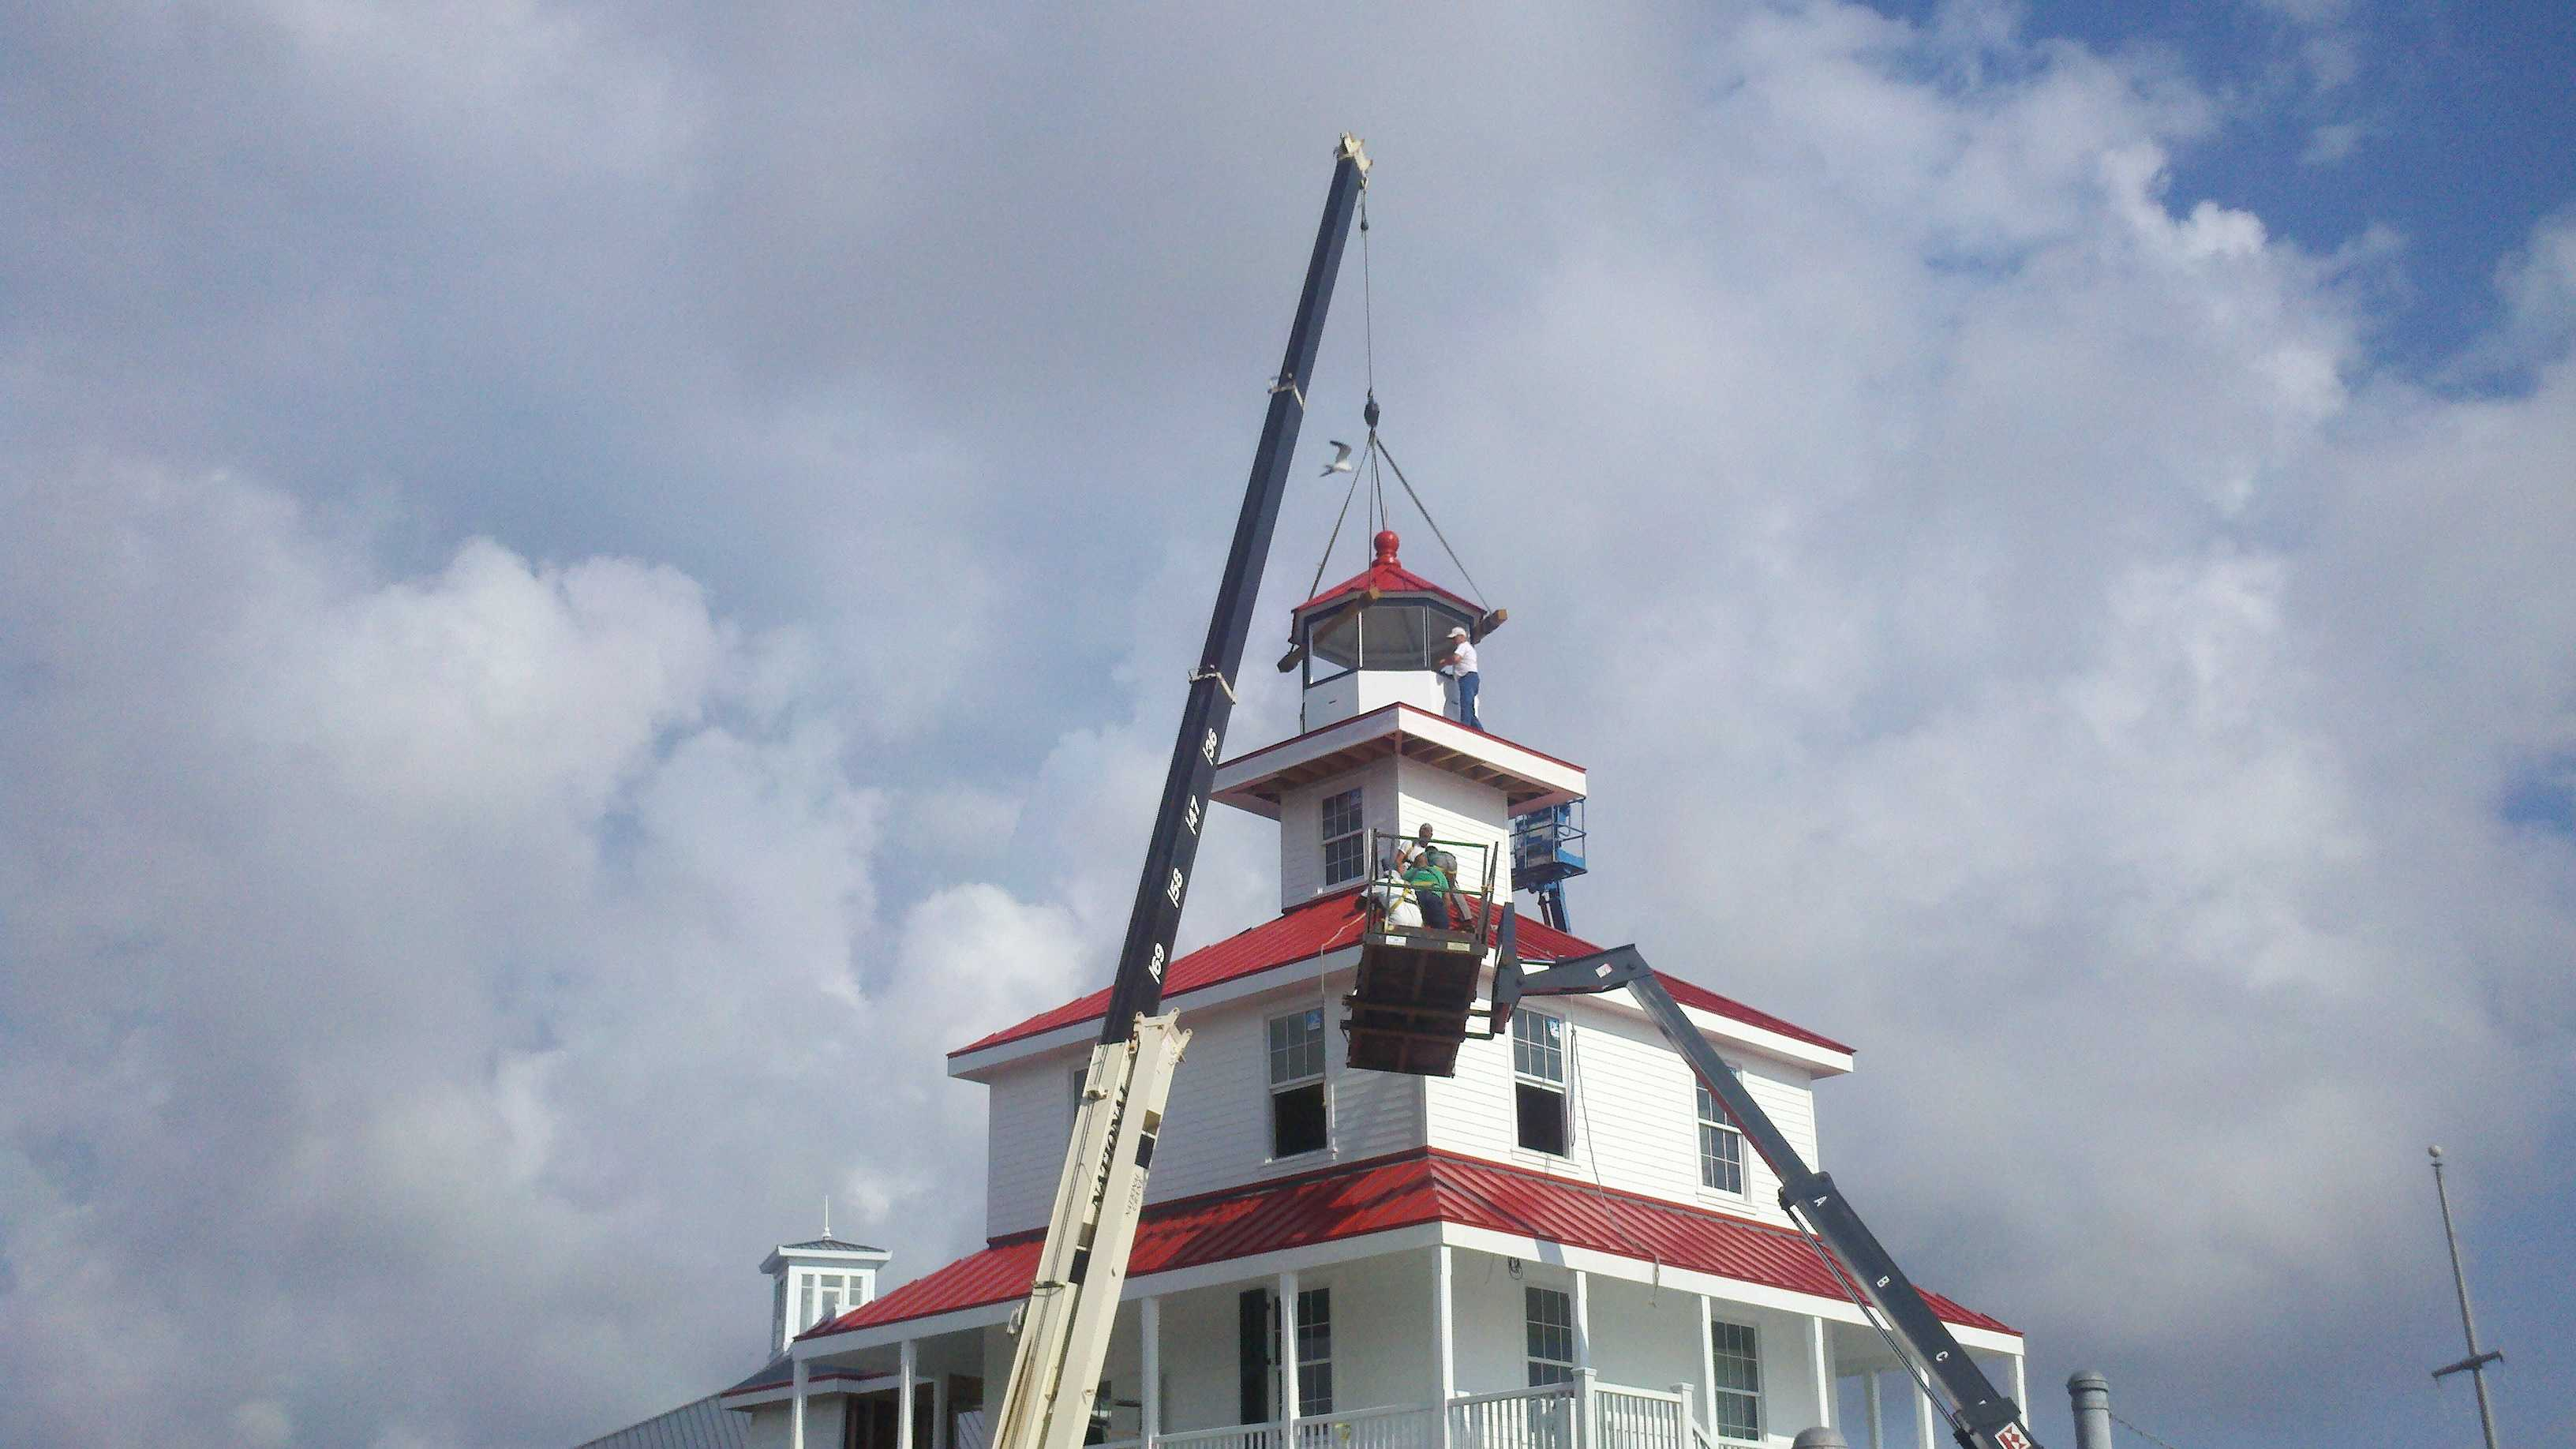 Crews hoist the new cupola on top of the New Canal Lighthouse